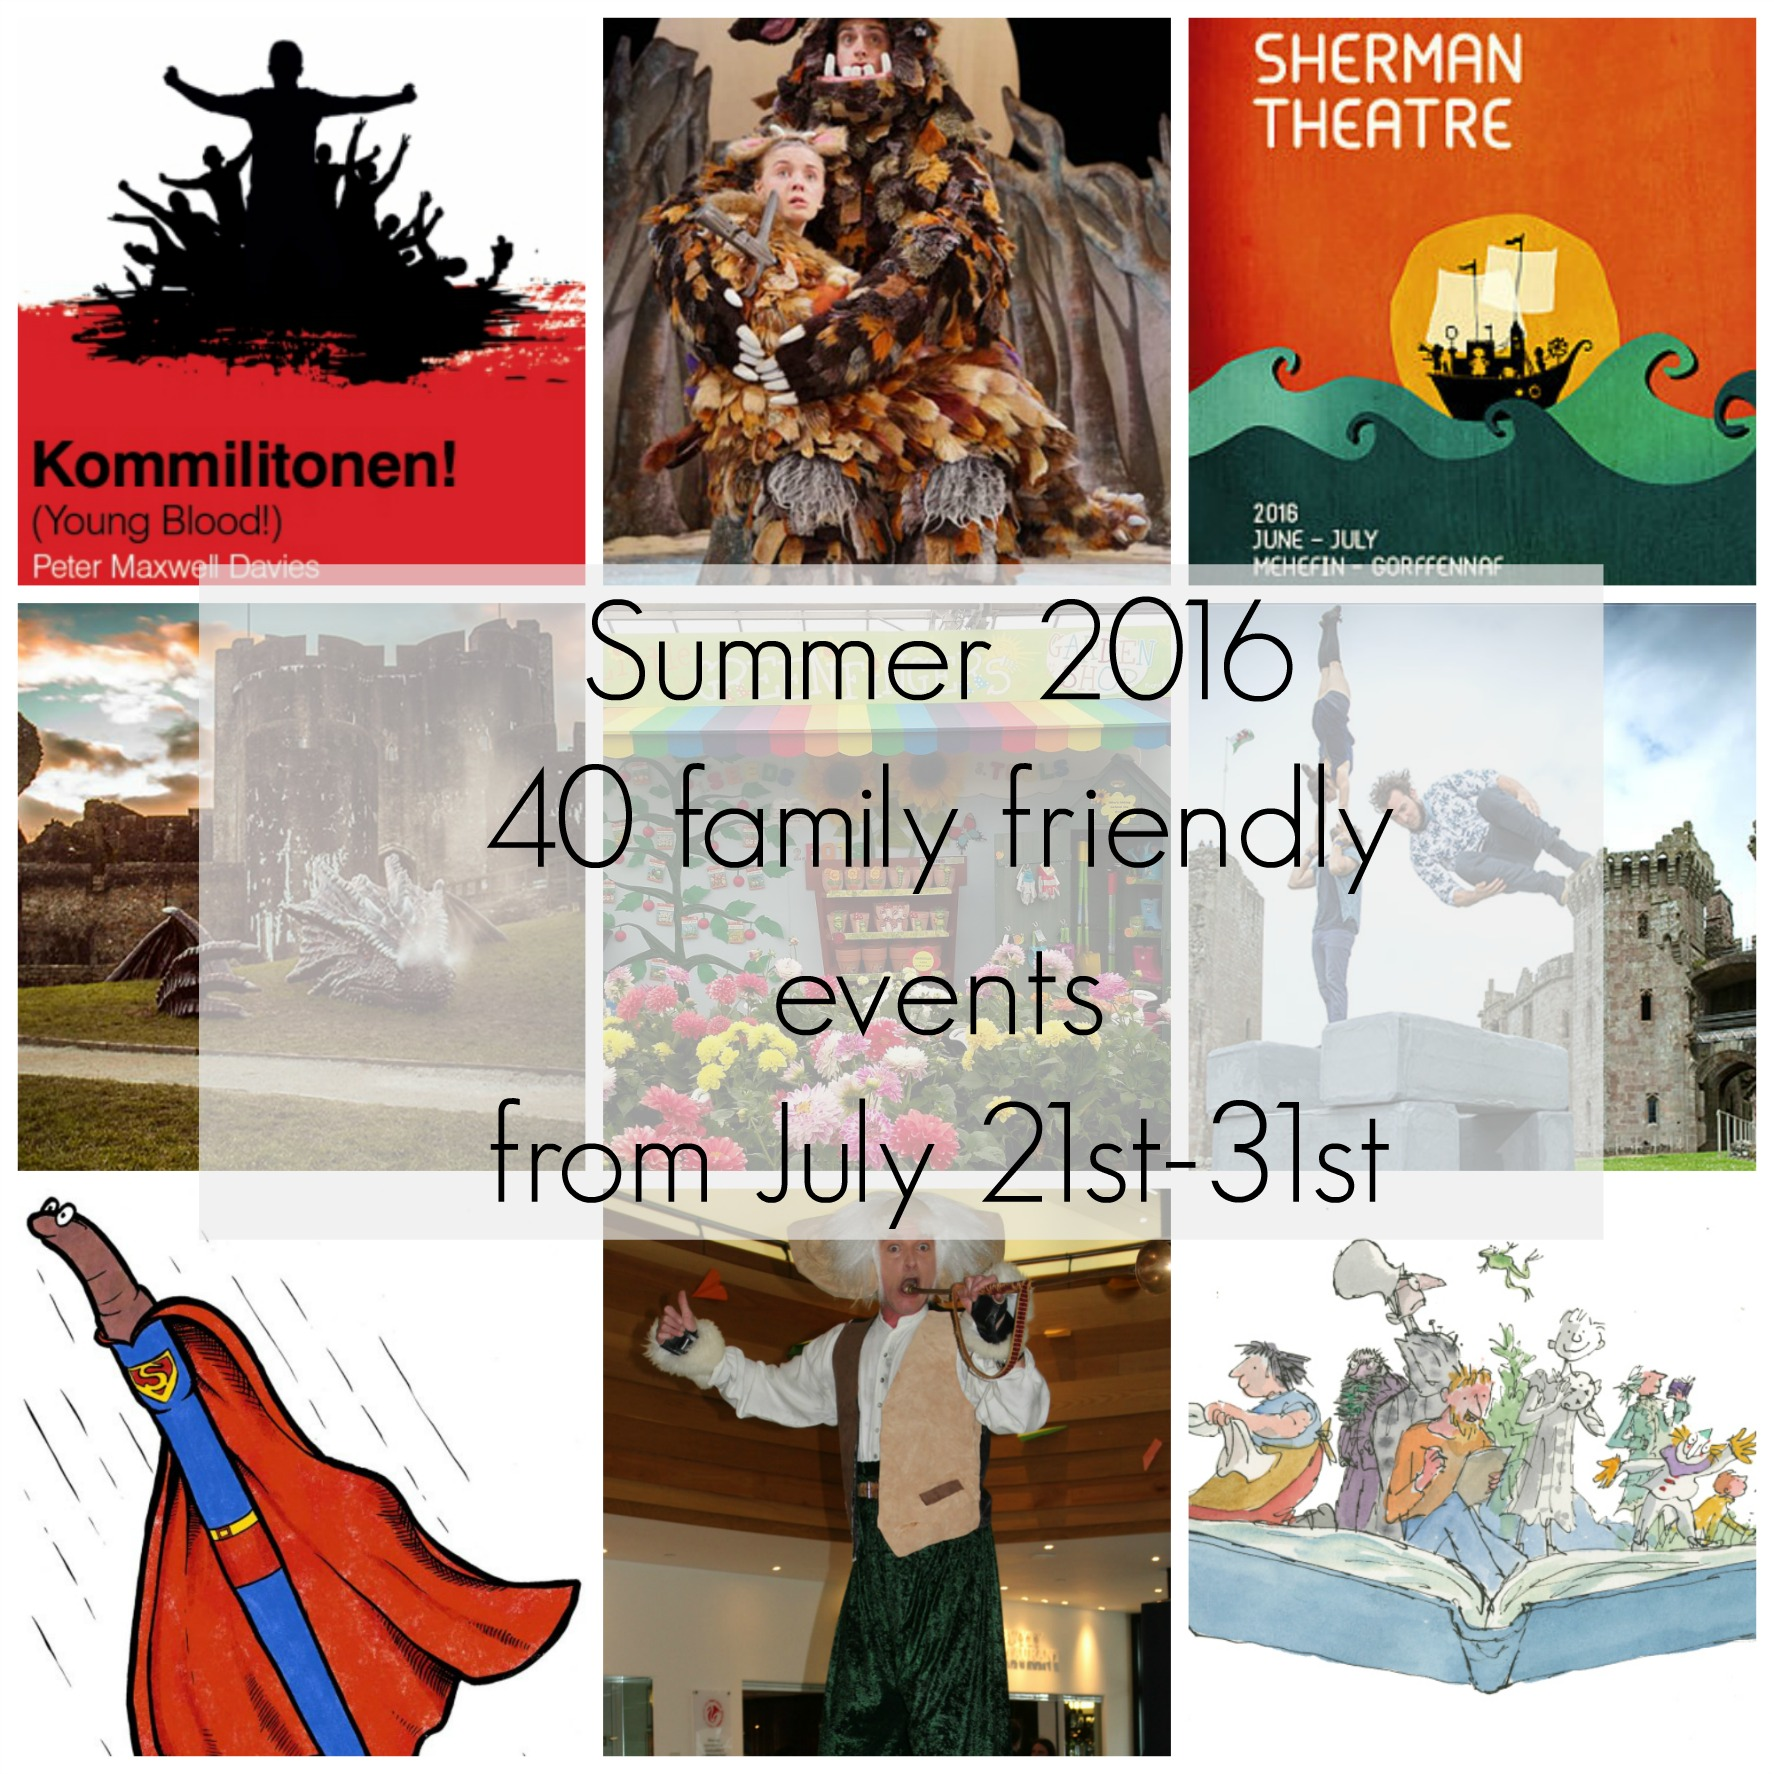 Summer holiday events 21st-31st July 2016 with text